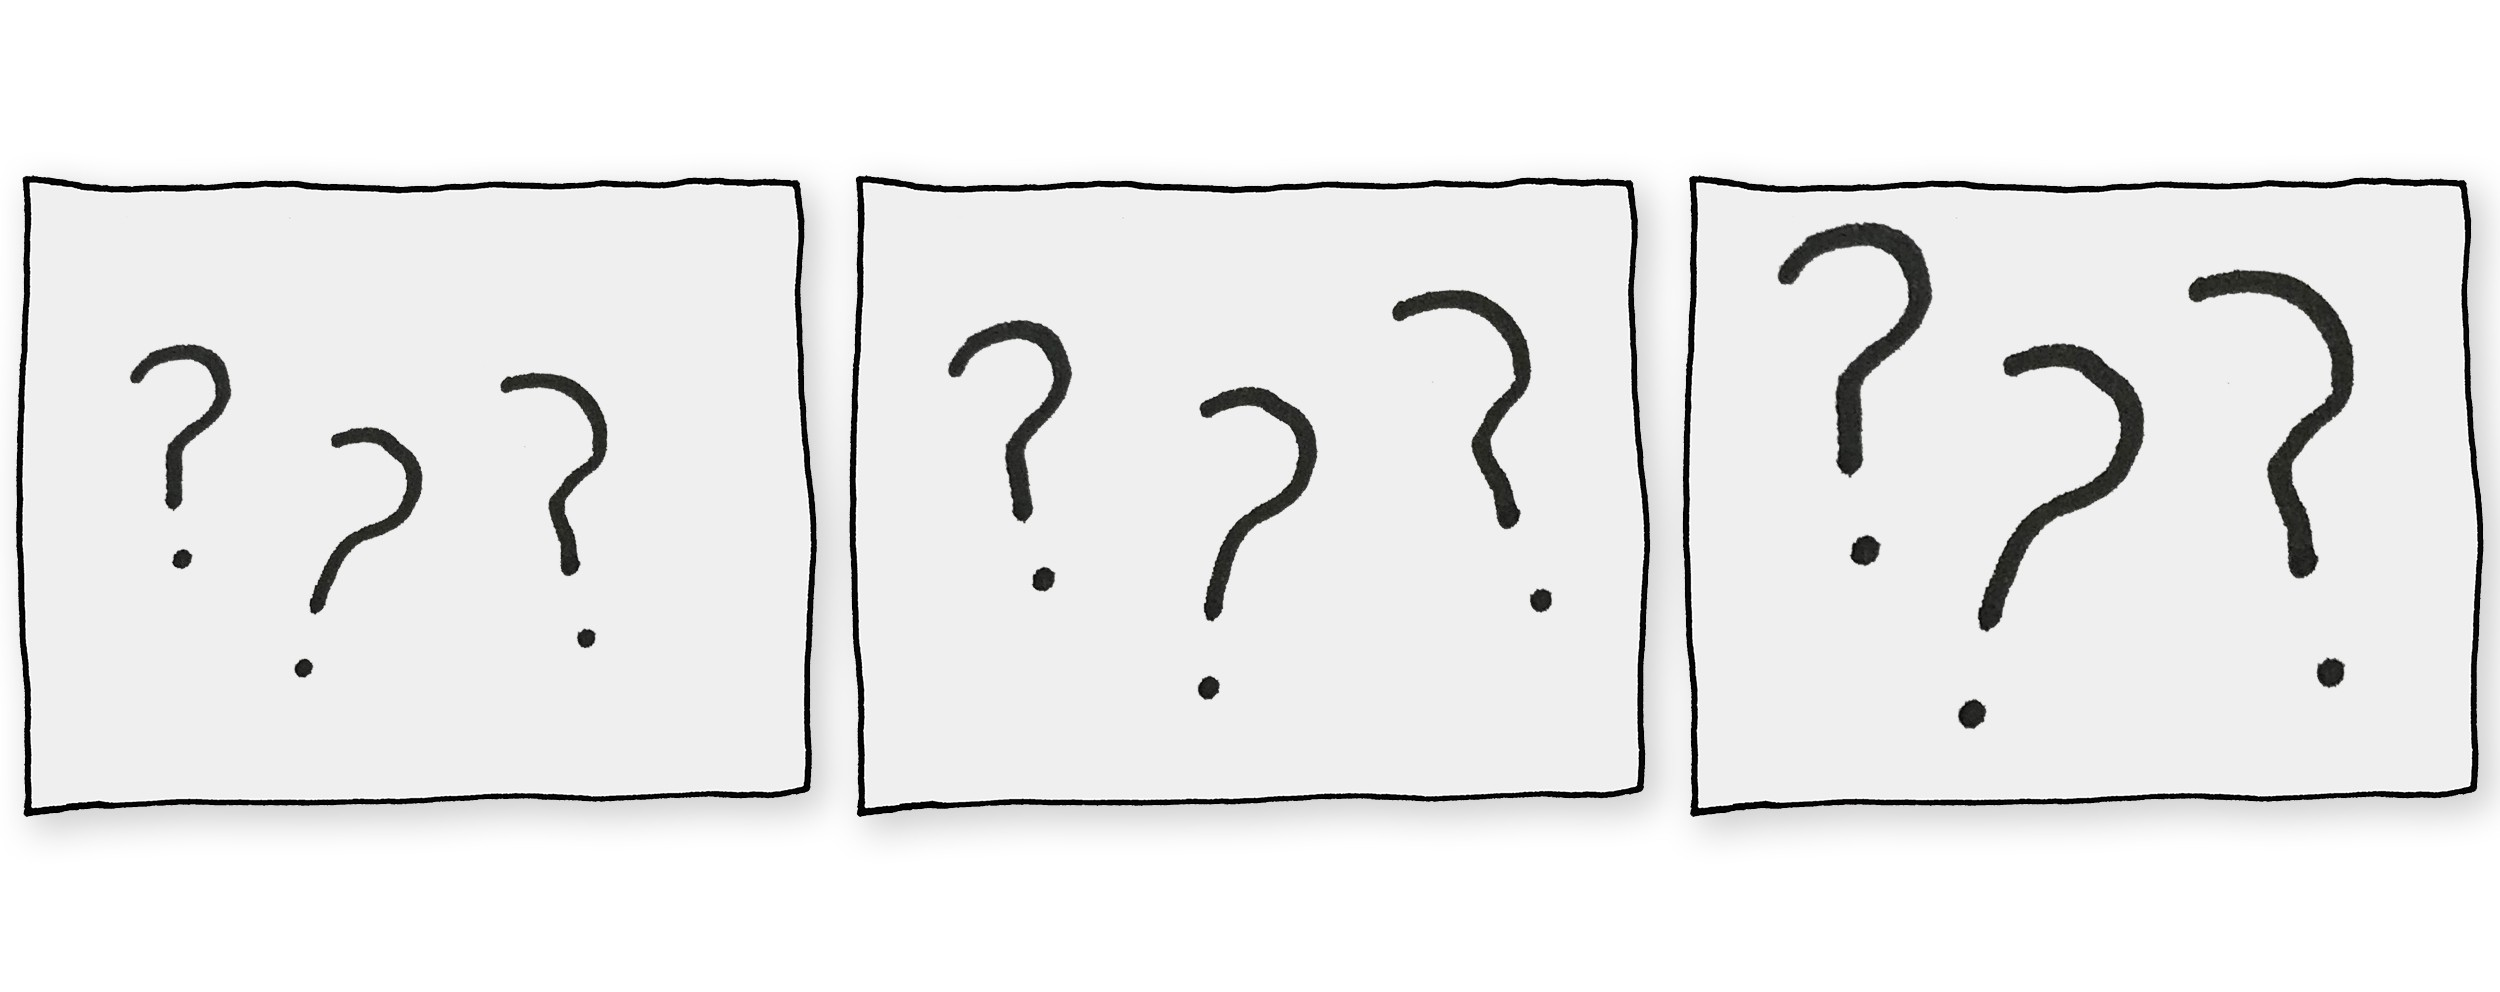 drawing game computer guesses How To Draw Comics When You Cant Actually Draw Chaz